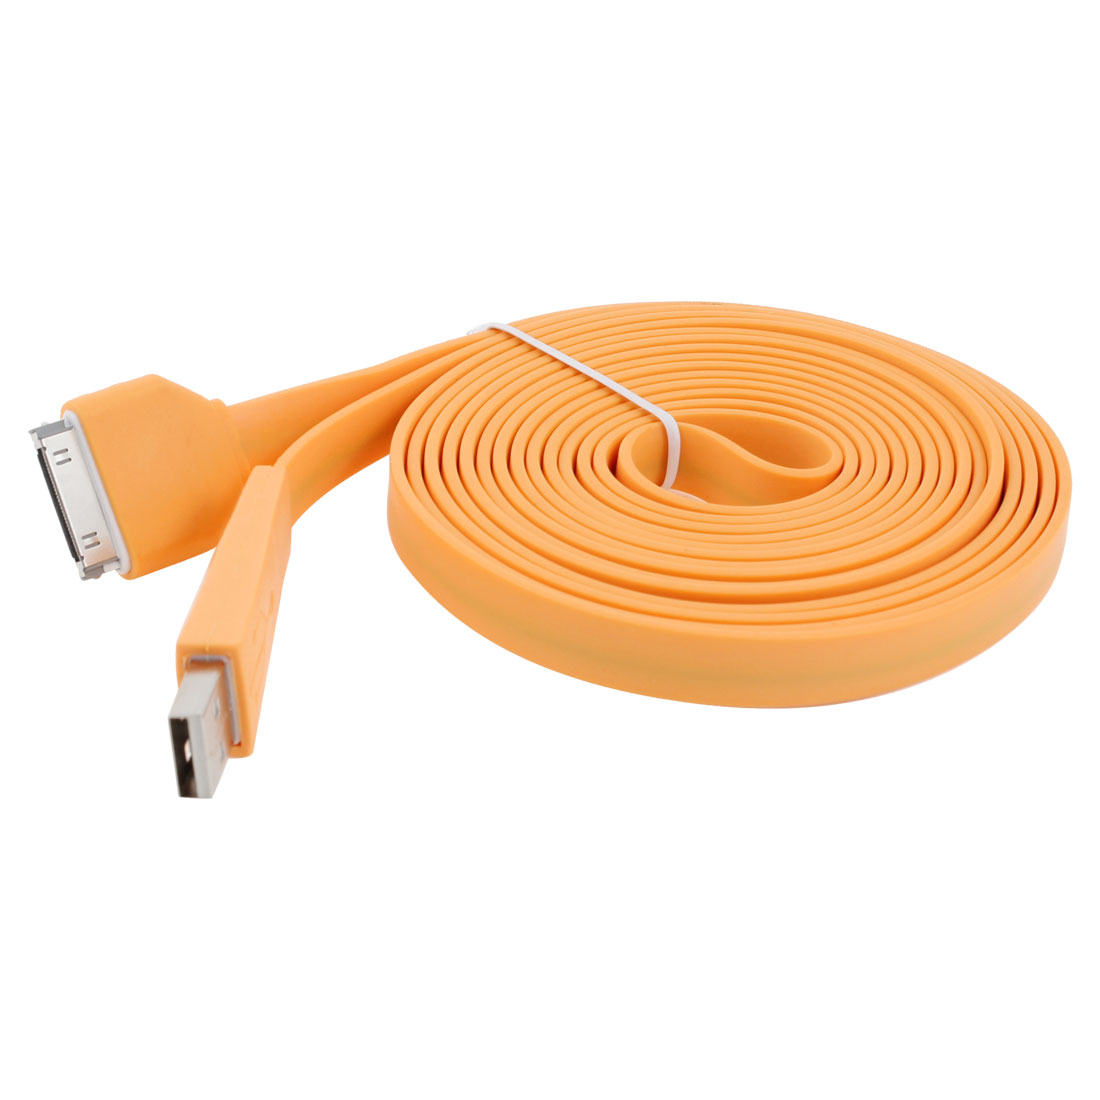 USB Type A to 30 Pin M/M Connector Data Adapter Cable Cord Light Orange